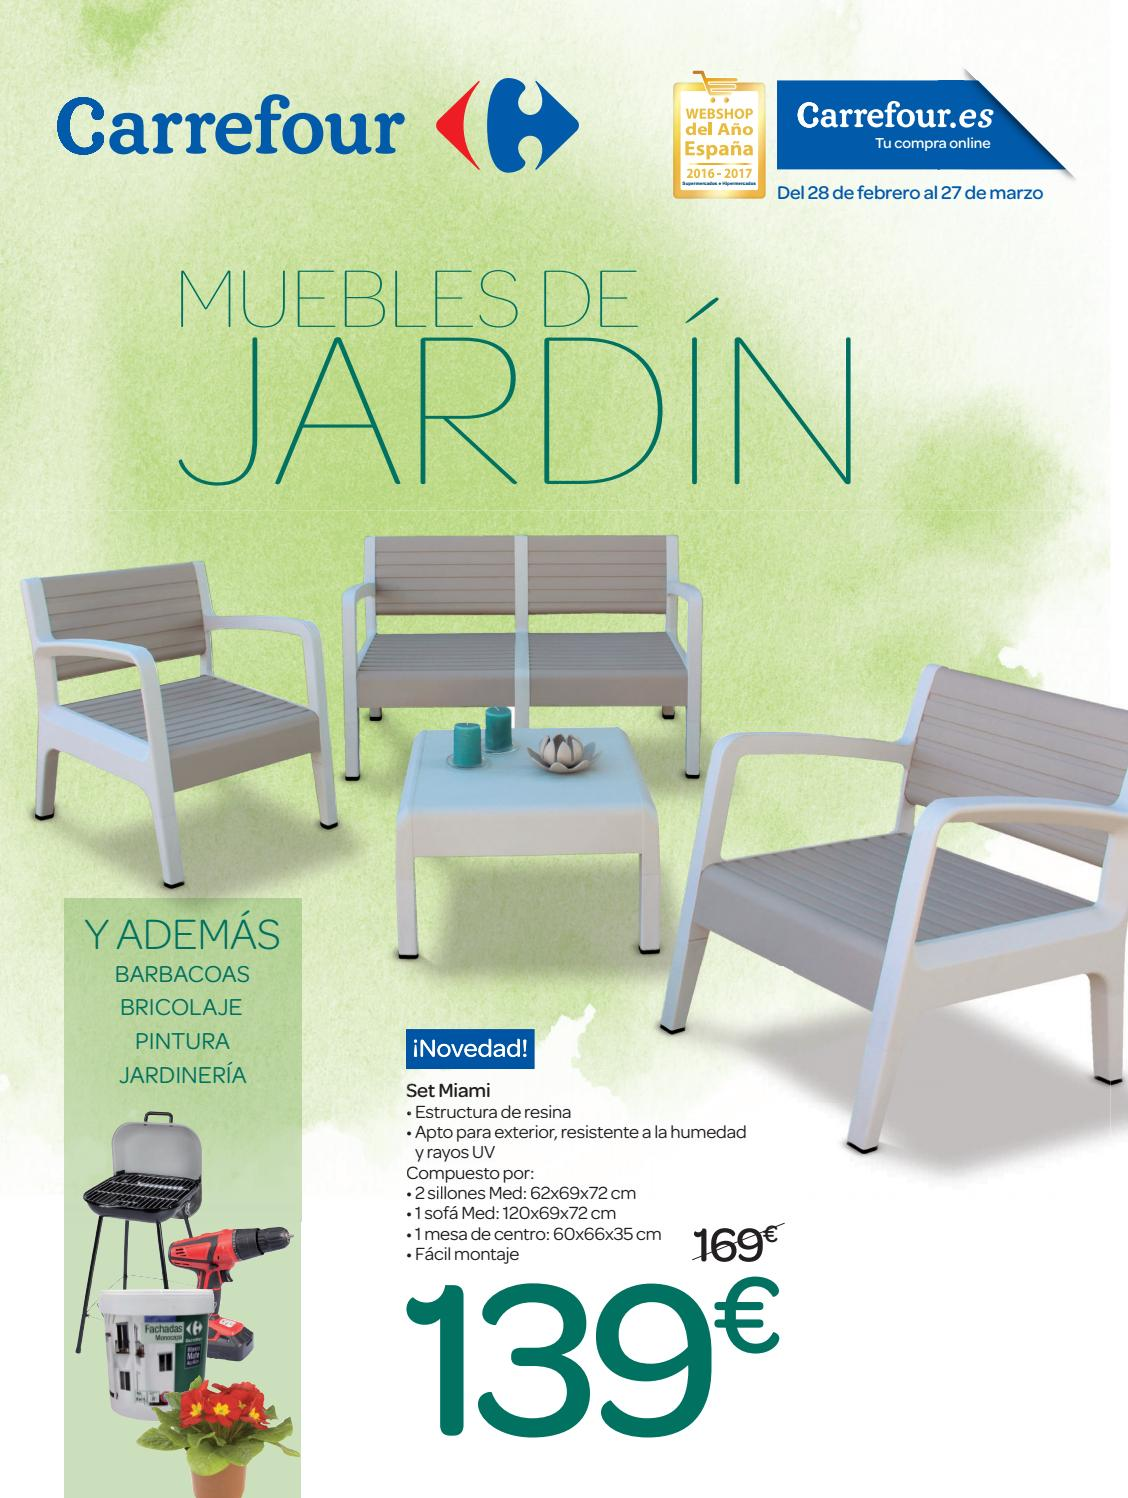 Muebles de jardin carrefour by ofertas supermercados issuu for Mesas de jardin en carrefour